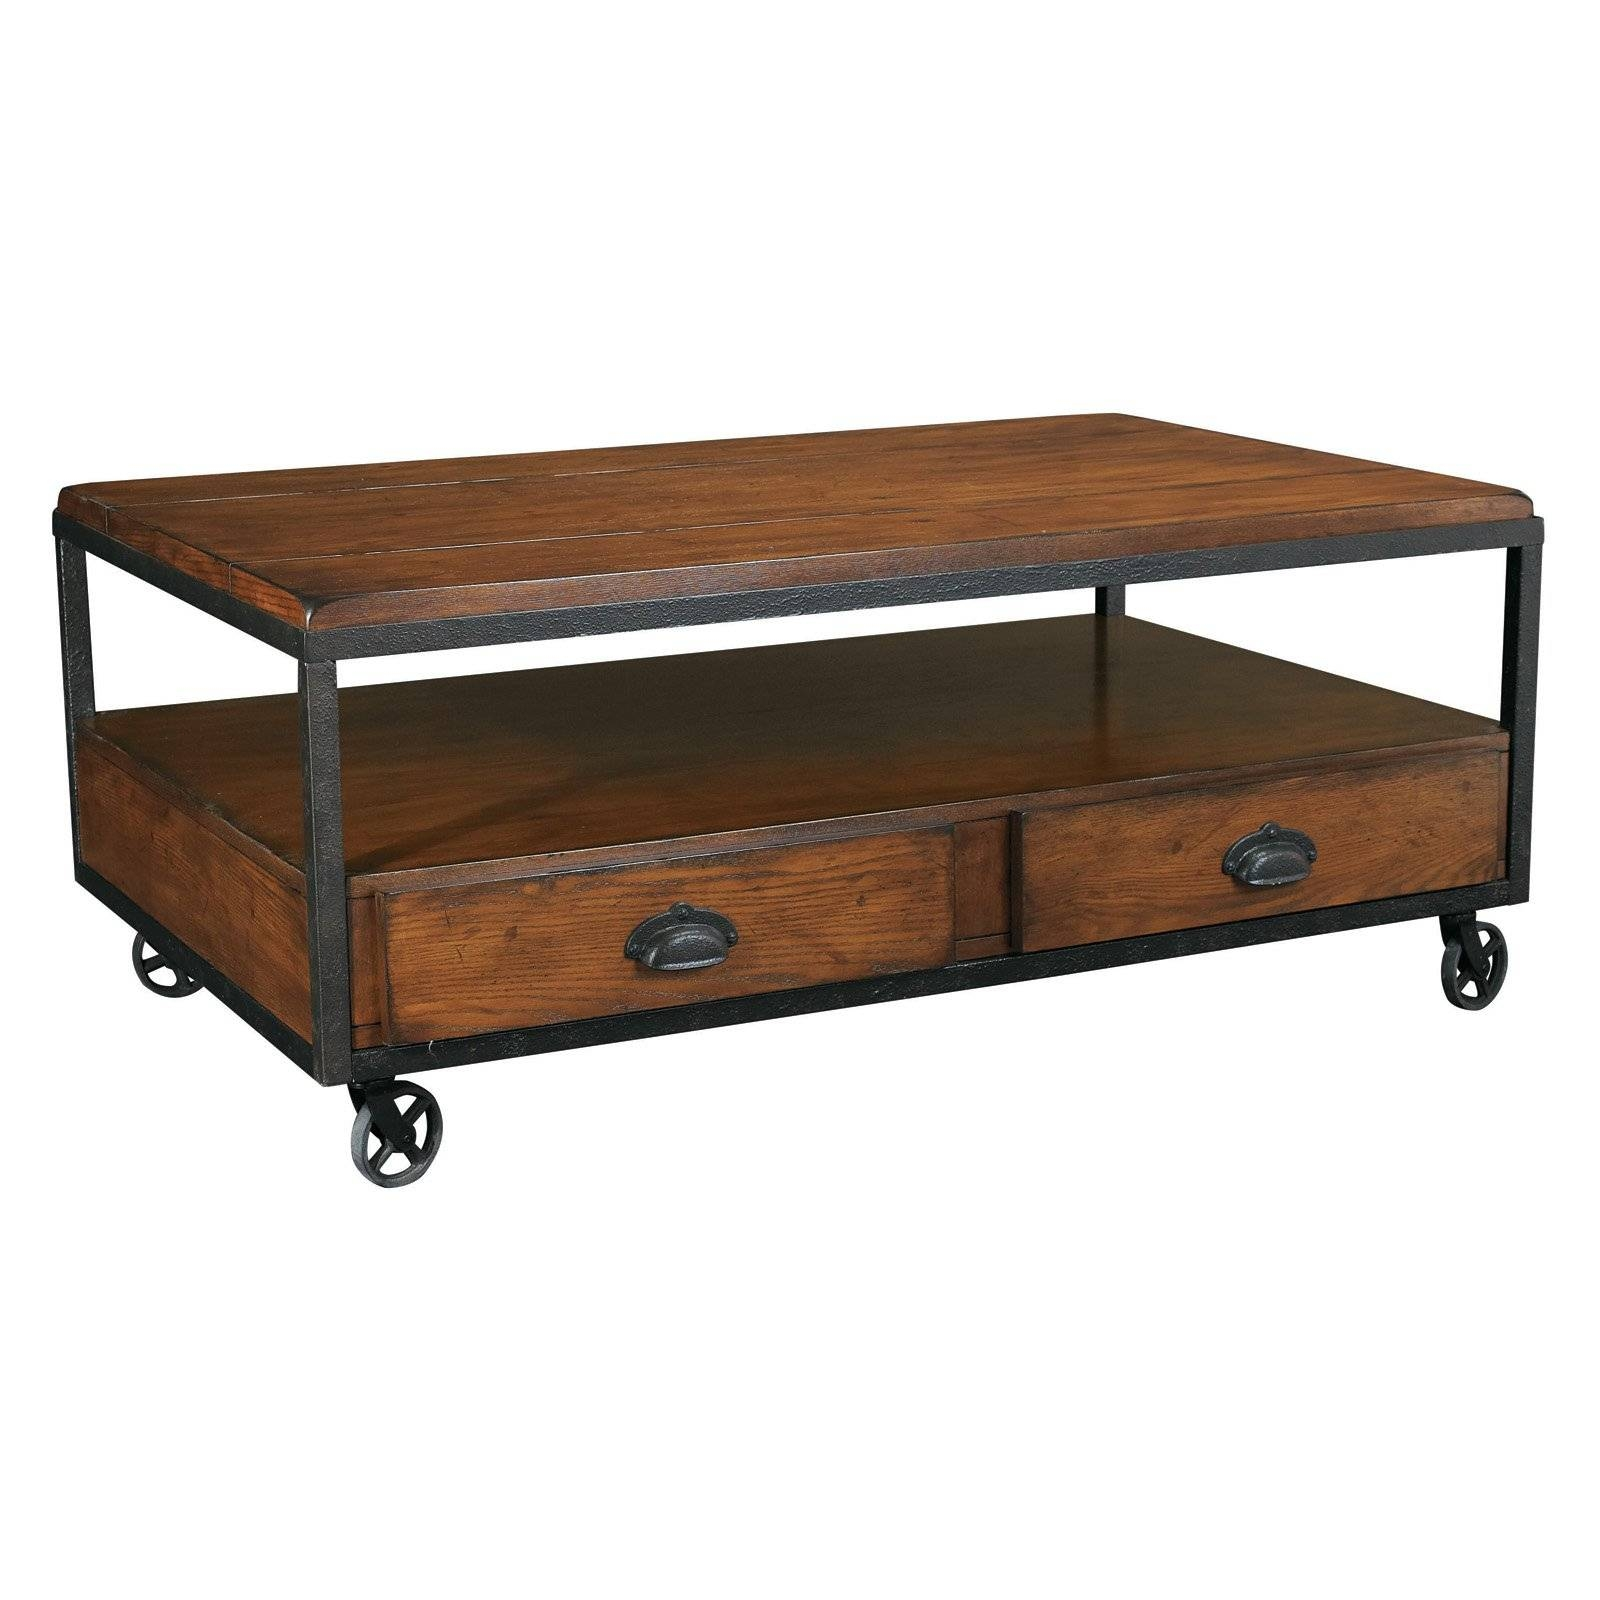 Hammary Baja Rectangular Storage Coffee Table - Coffee Tables At throughout Storage Coffee Tables (Image 20 of 30)